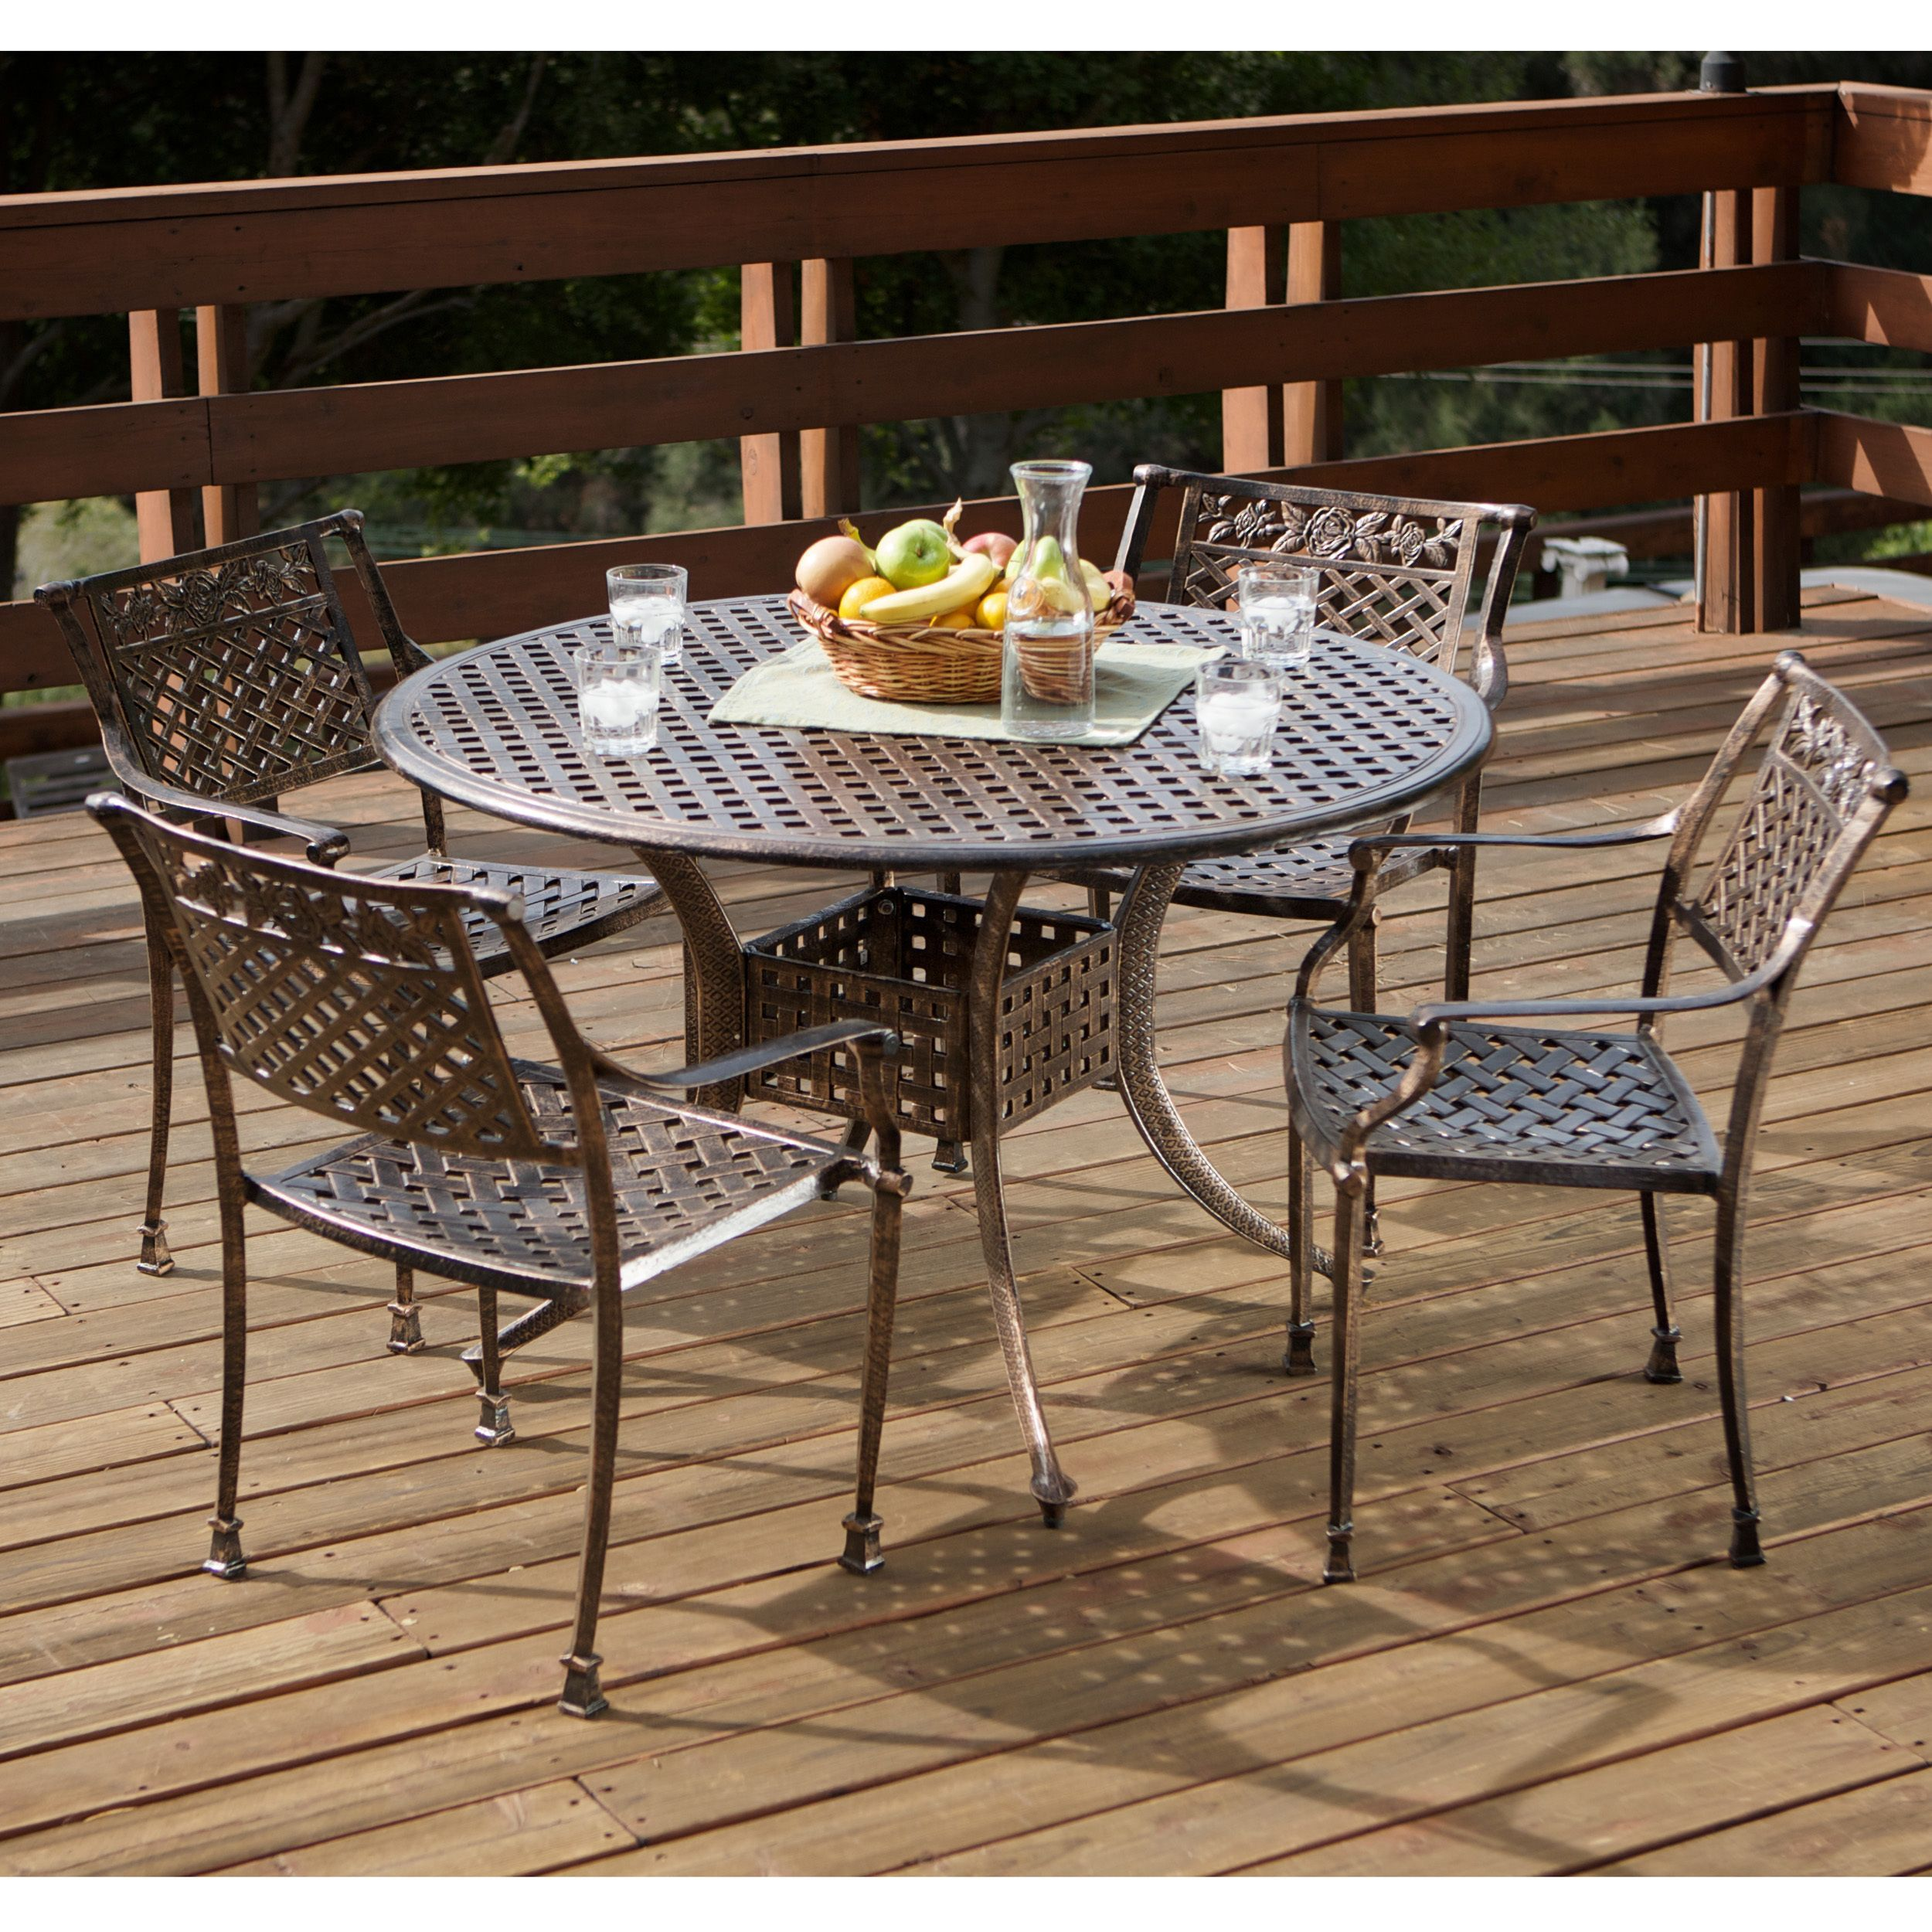 This Sebastian Outdoor Dining Set Showcases Rose Adorned Chair Backs. The  Basket Weave Pattern Shared By The Chairs And Table Add Extra Opulence And  ...